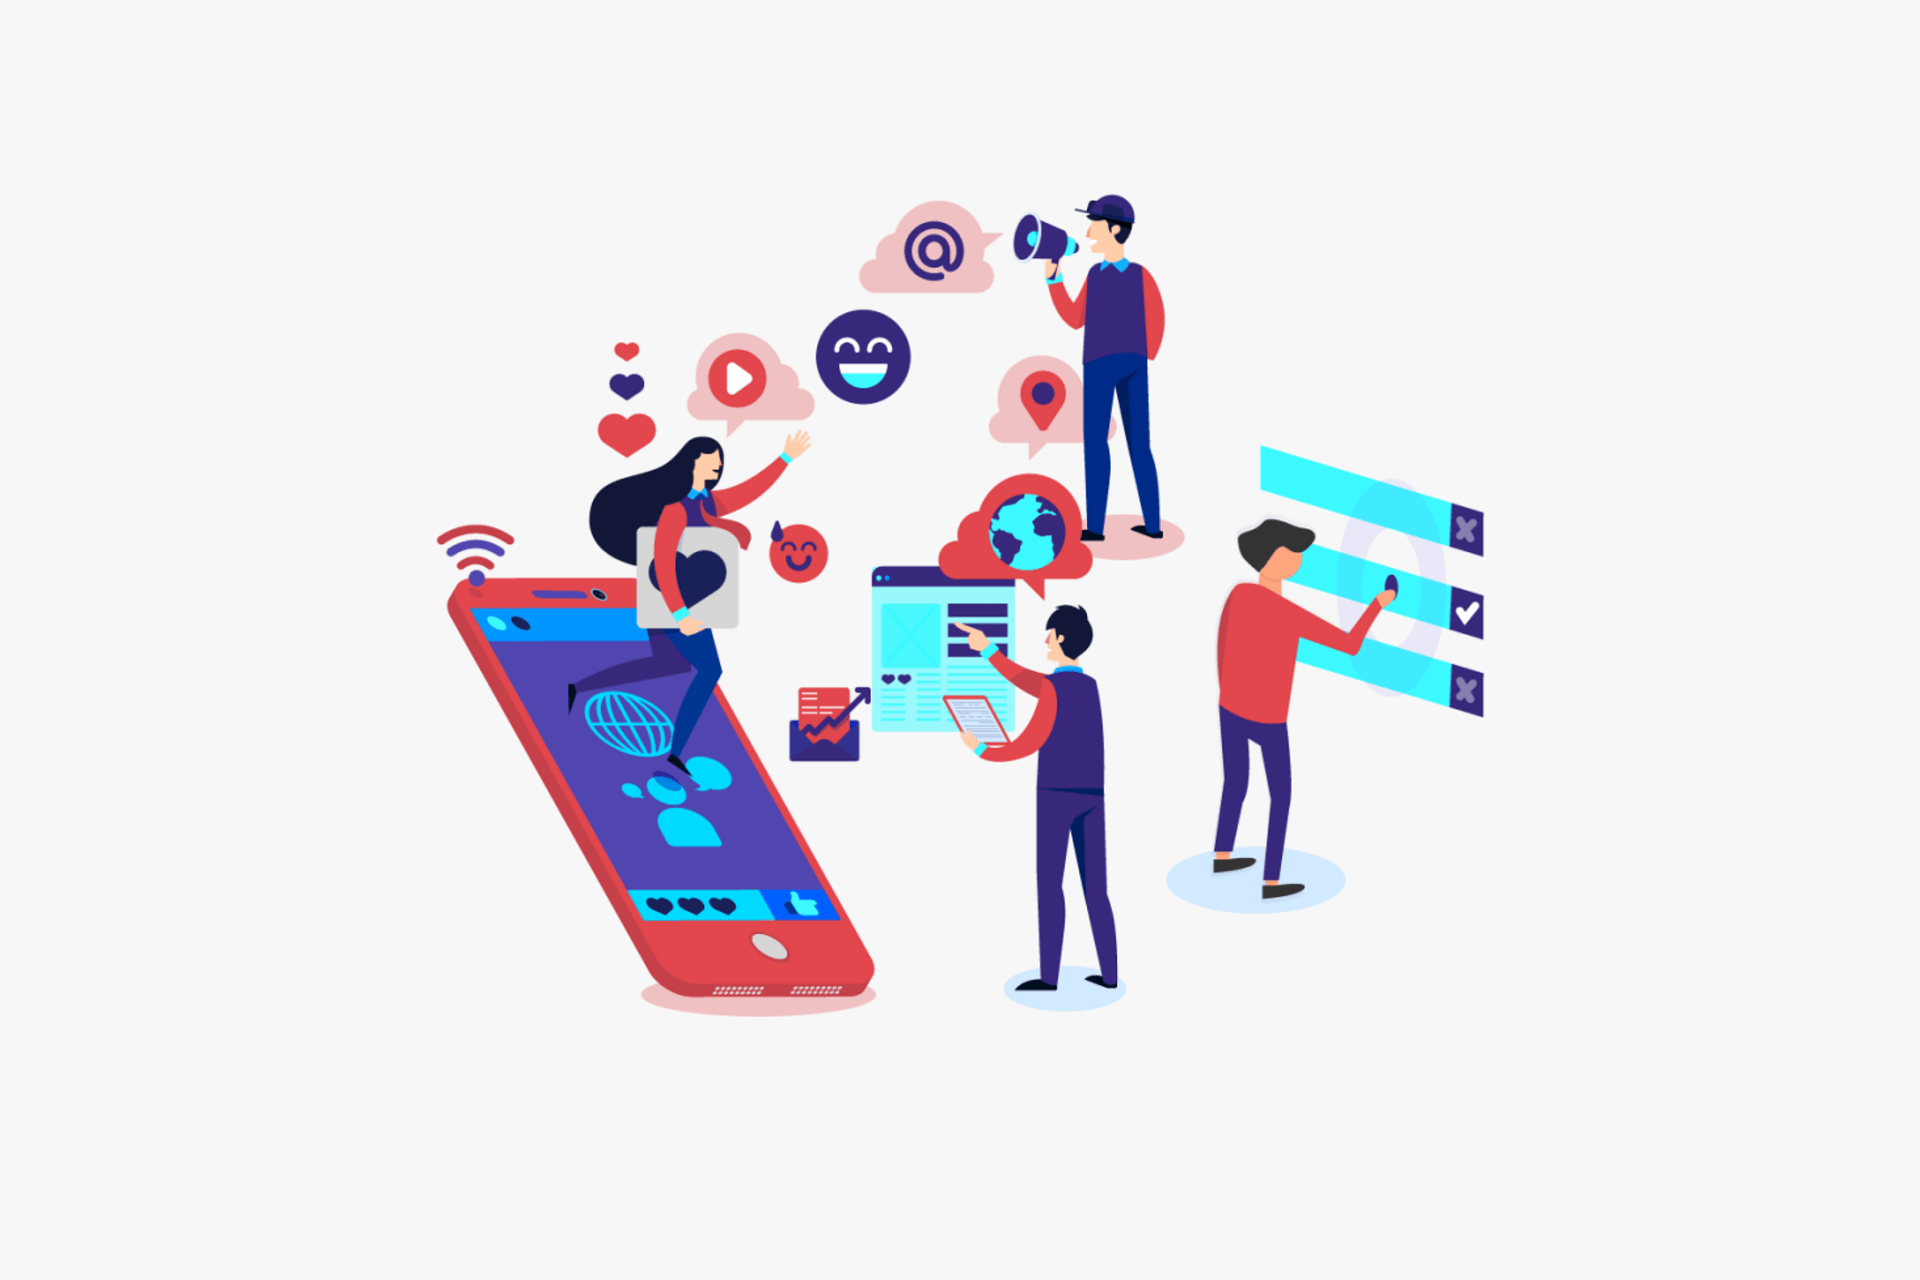 An infographic is depicting how social media connects people through multiple digital devices.